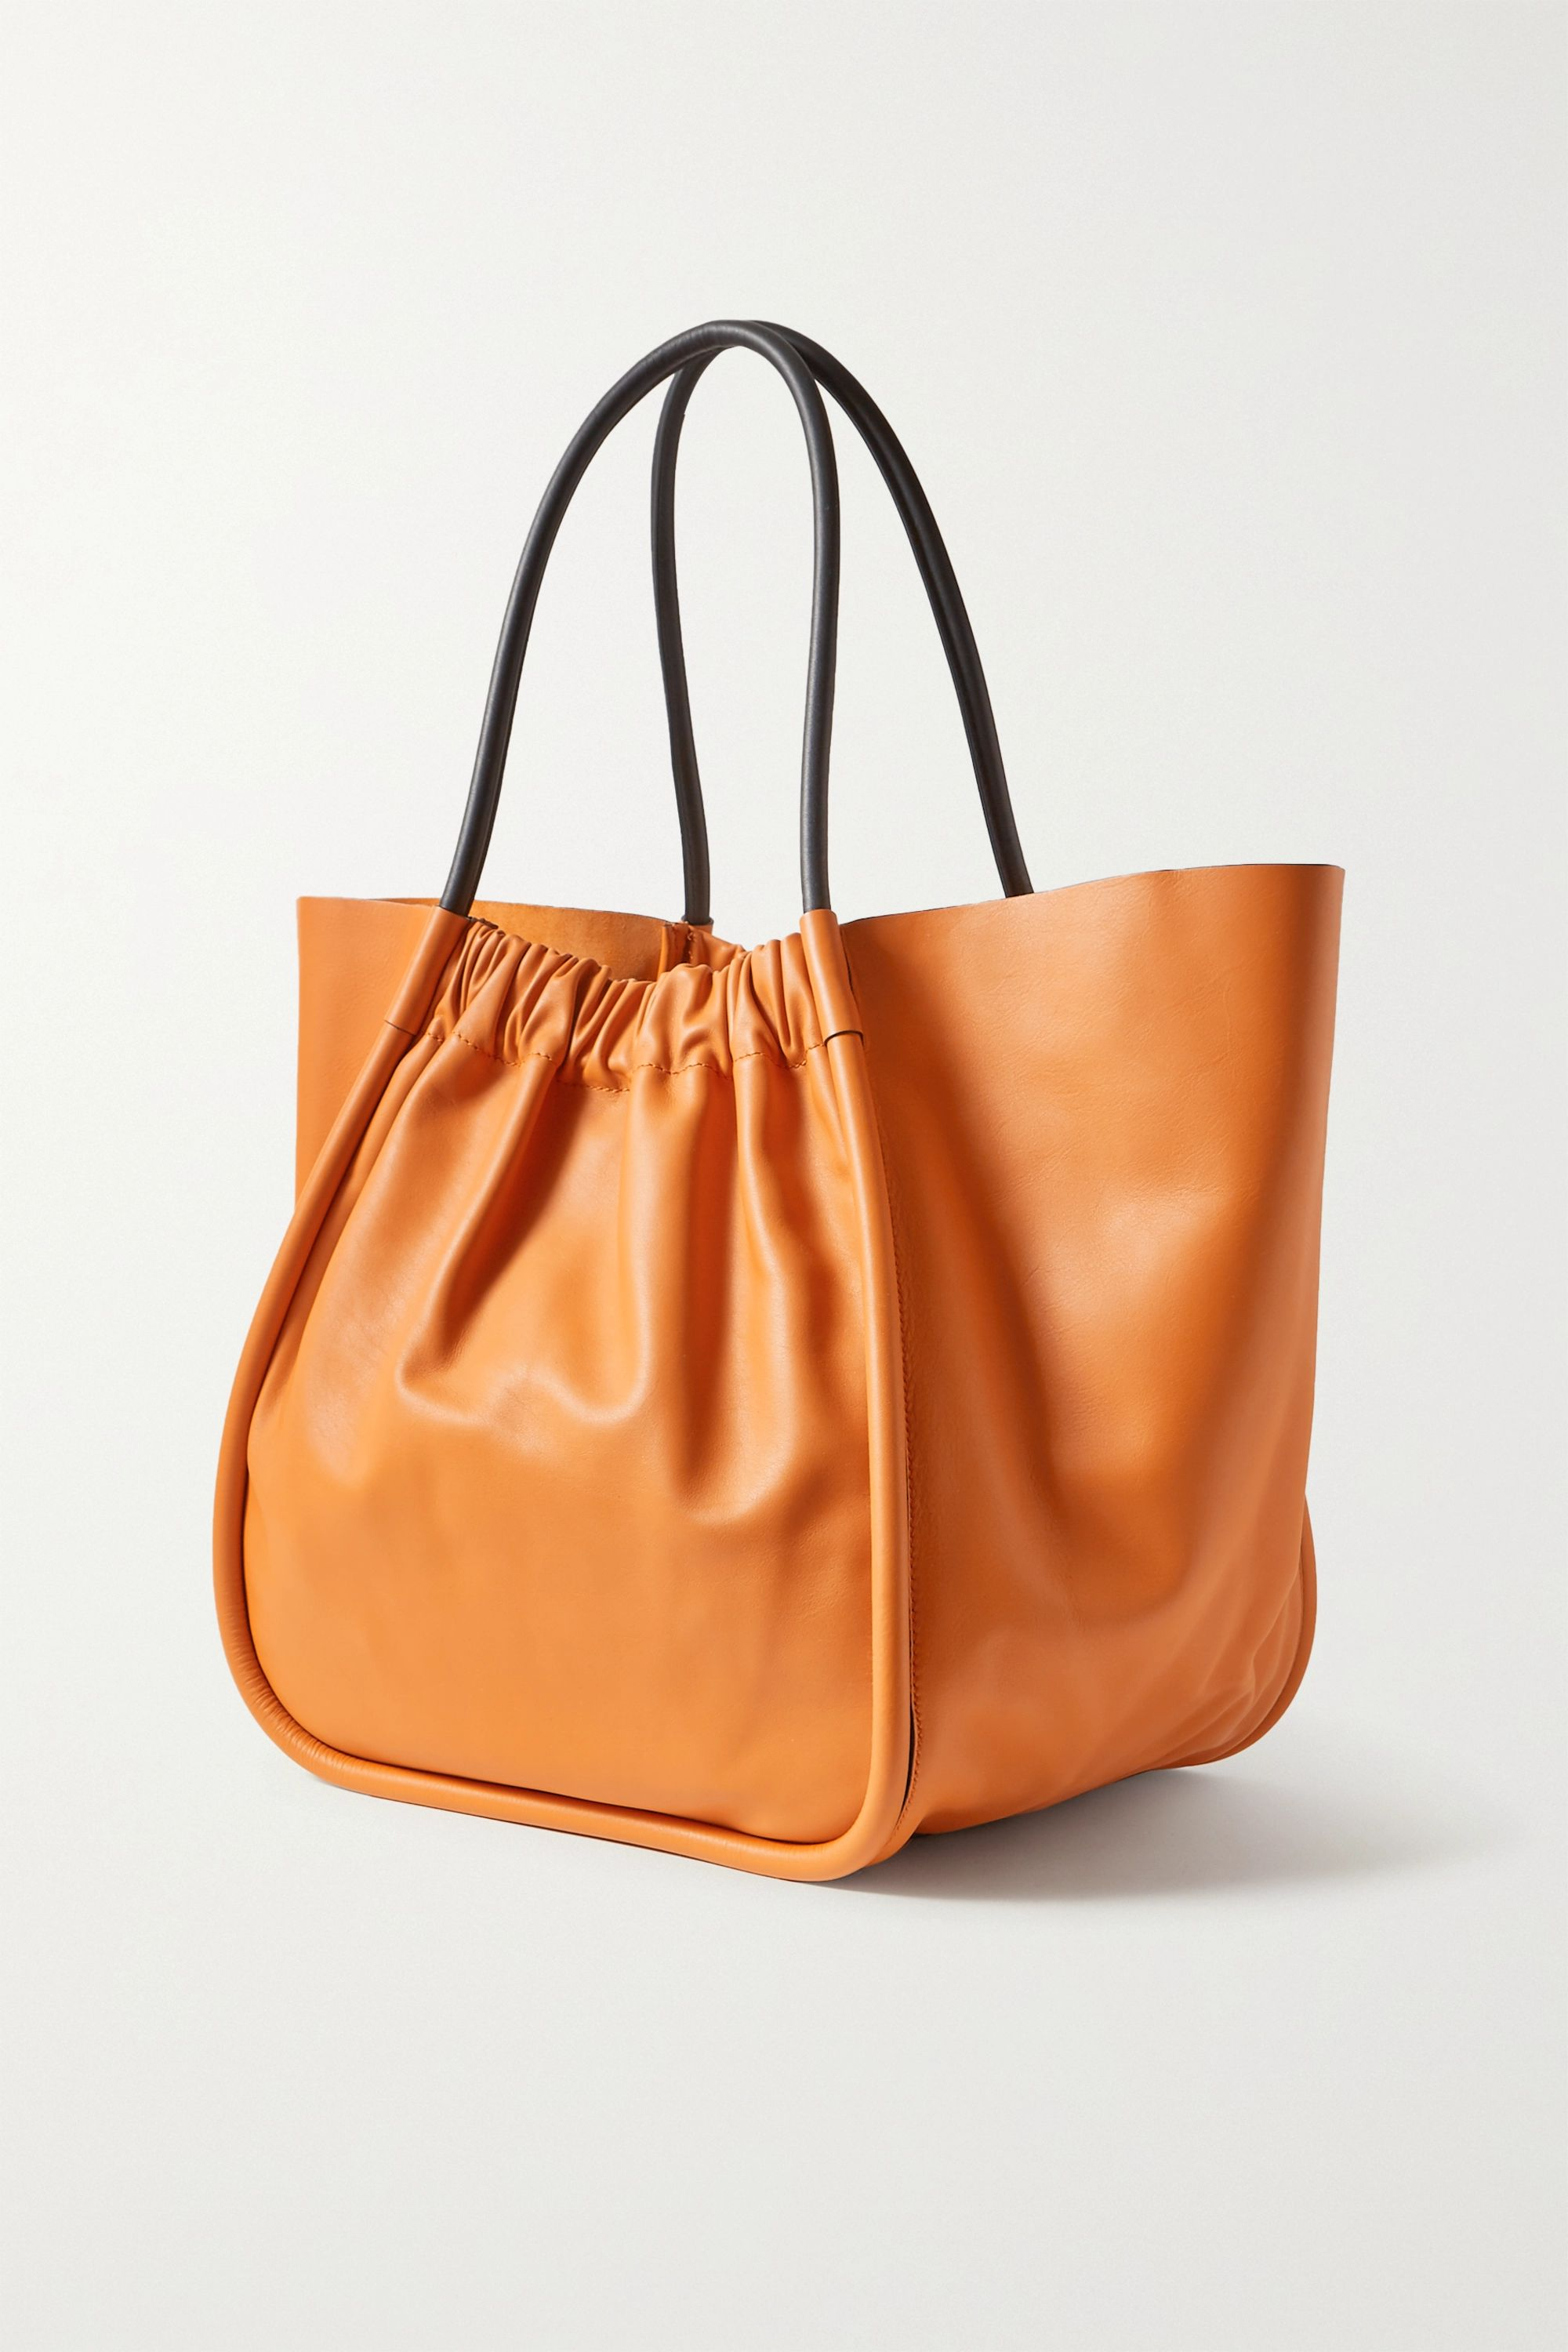 Proenza Schouler XL ruched two-tone leather tote